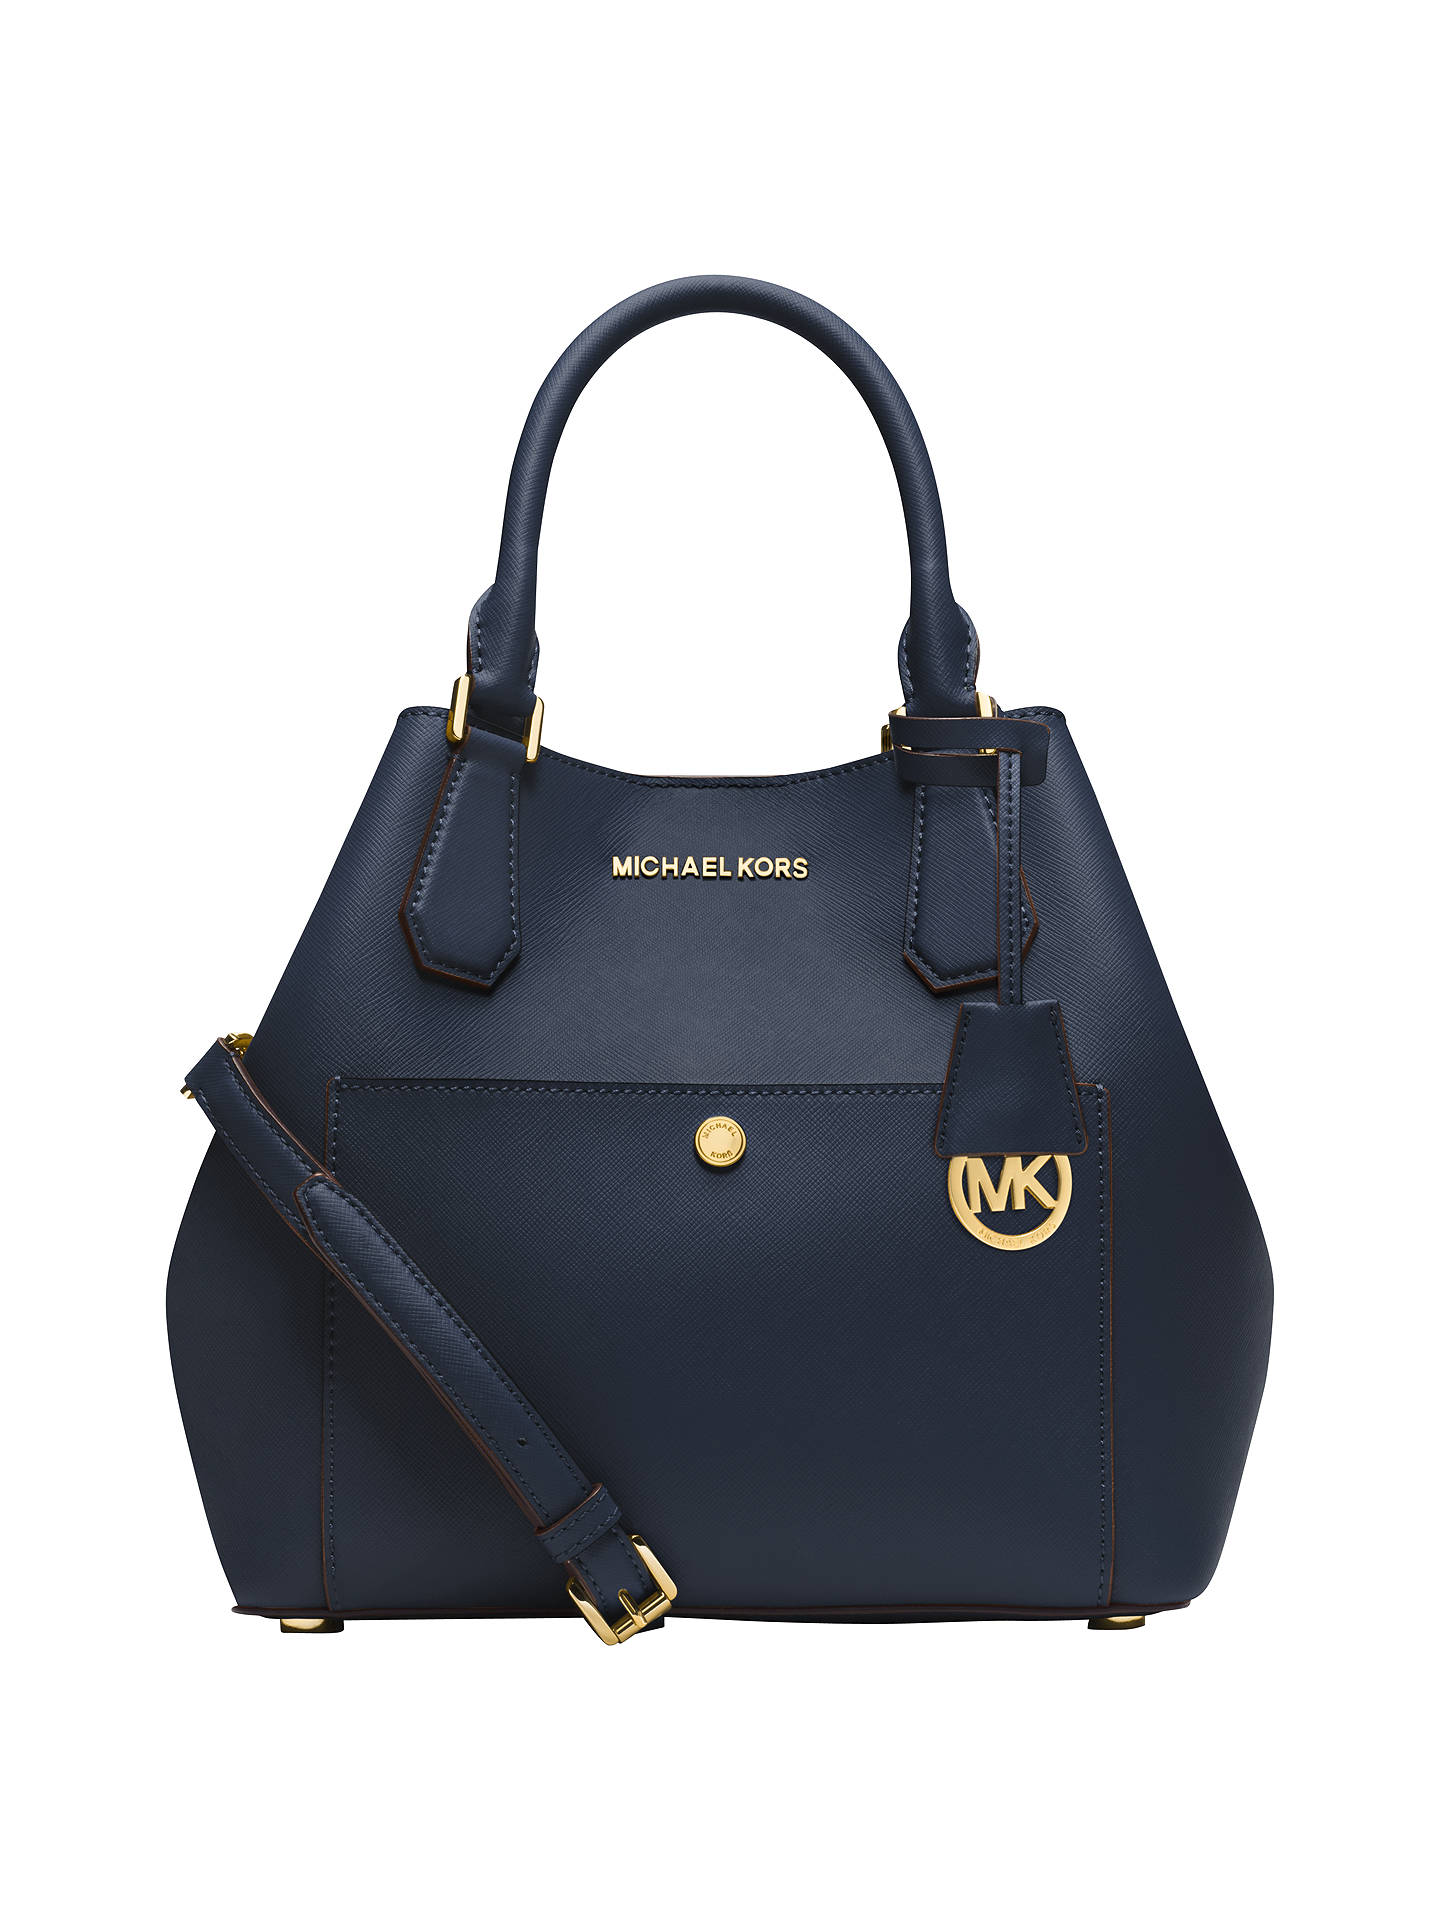 Michael Kors Greenwich Large Leather